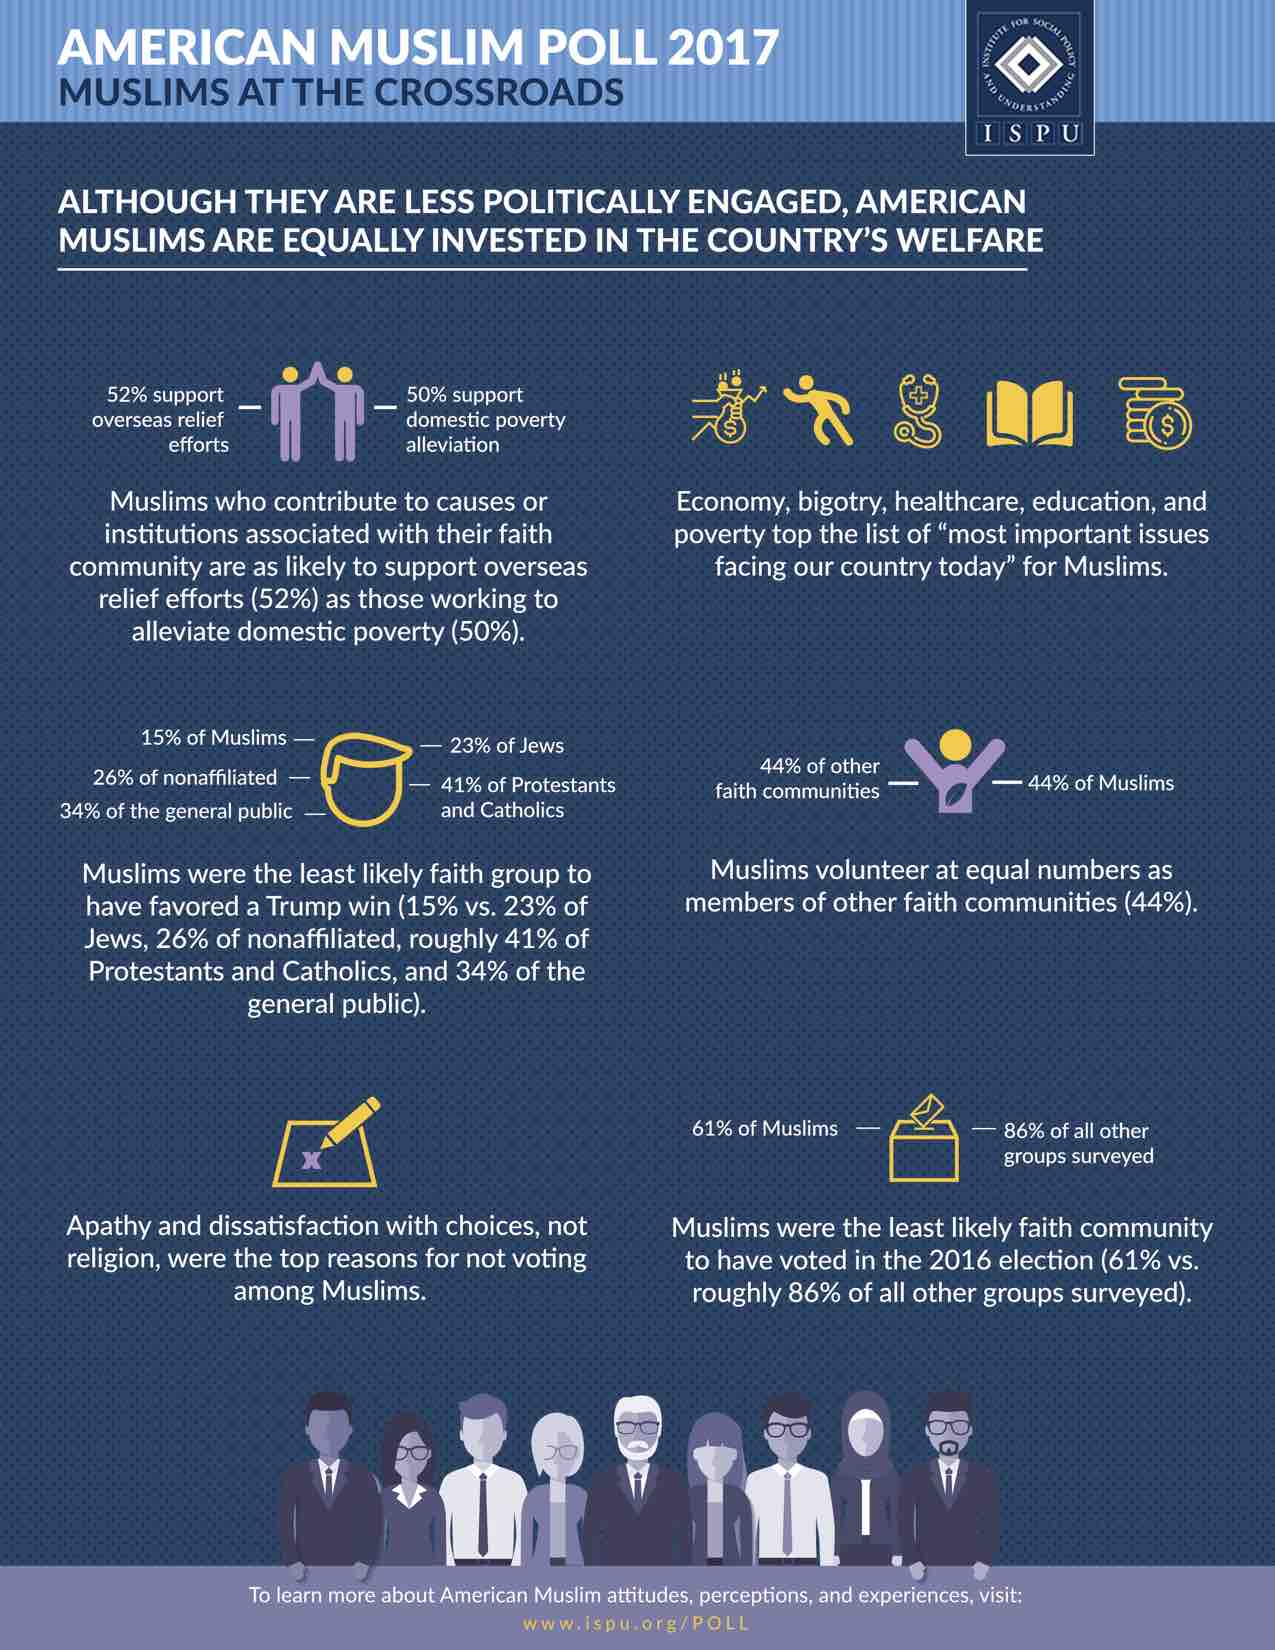 Infographic showing Although They Are Less Politically Engaged, American Muslims Are Equally Invested in the Country's Welfare